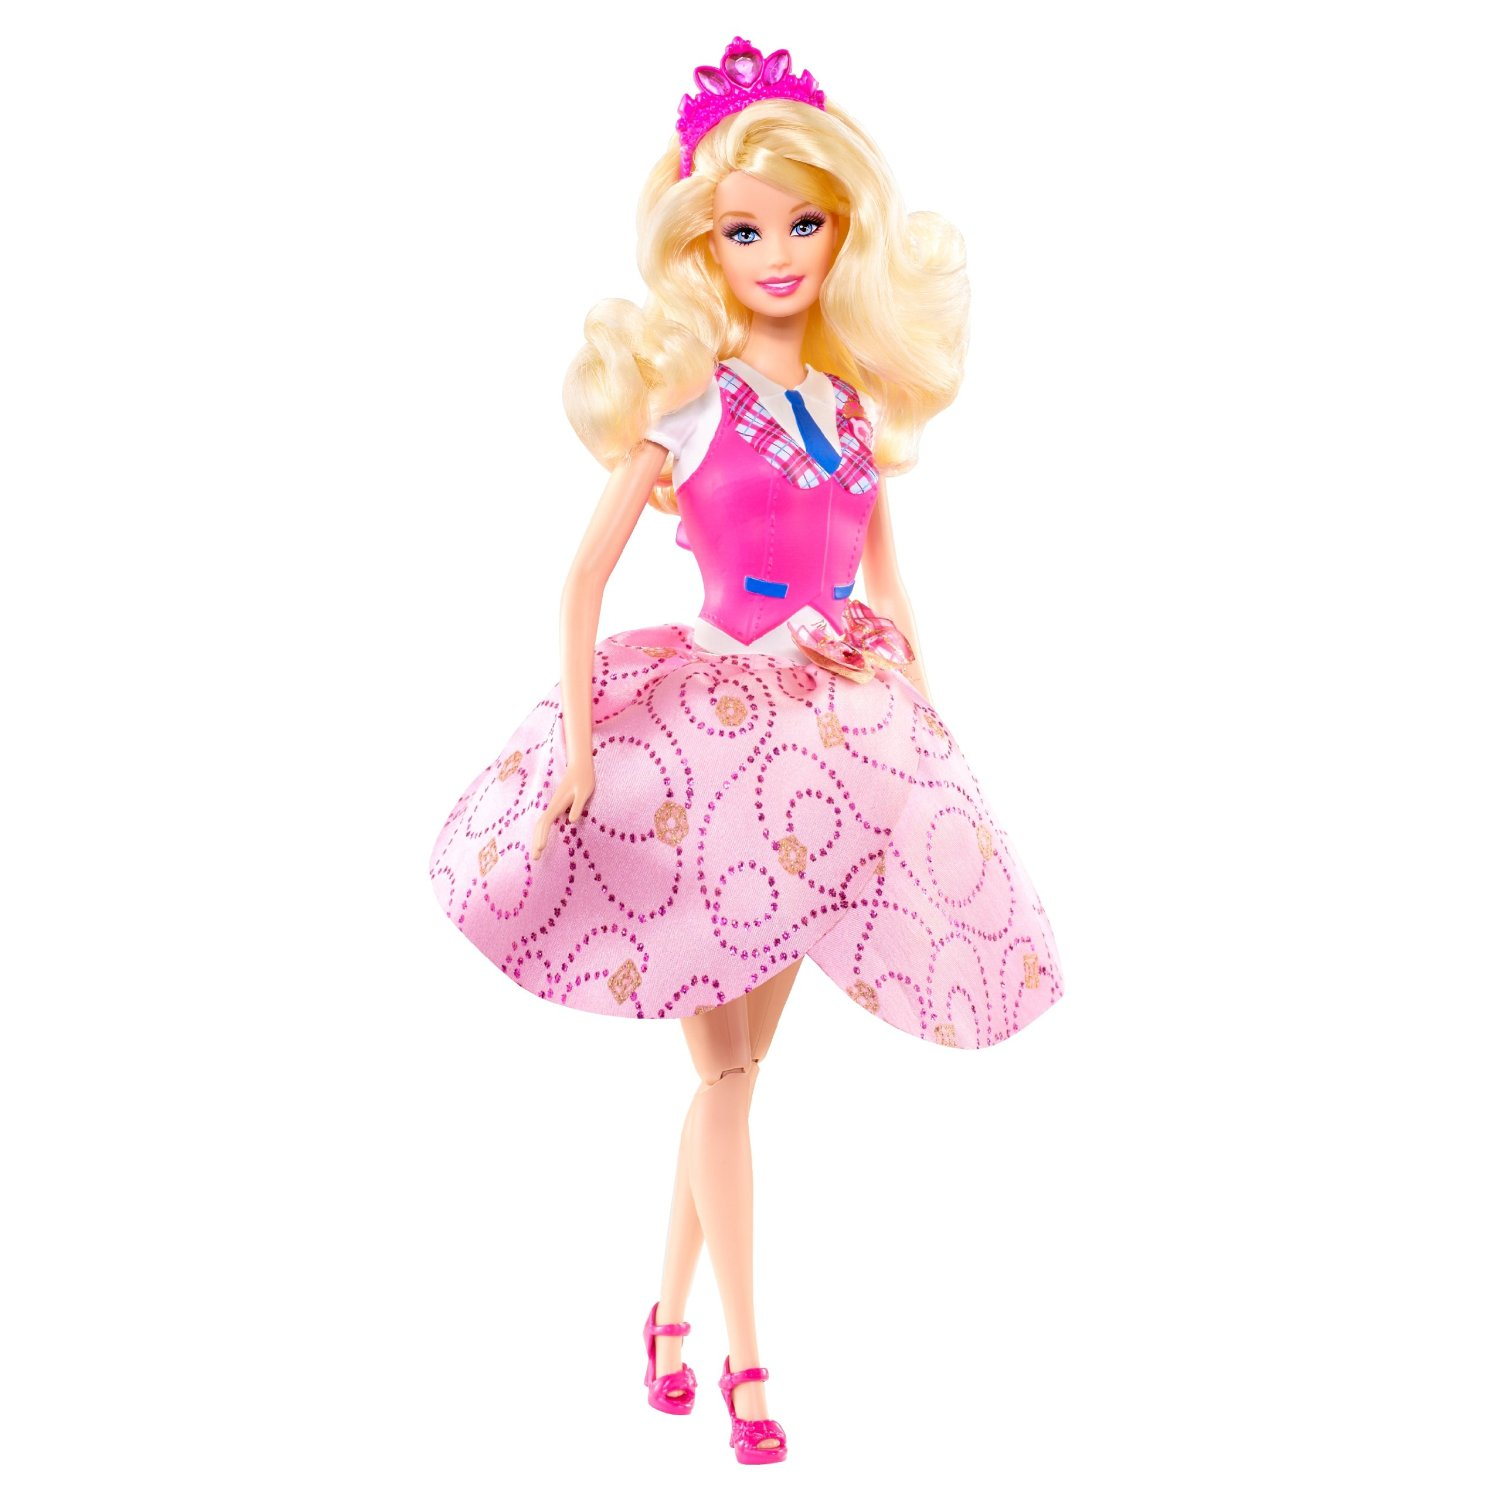 Clipart barbie doll.